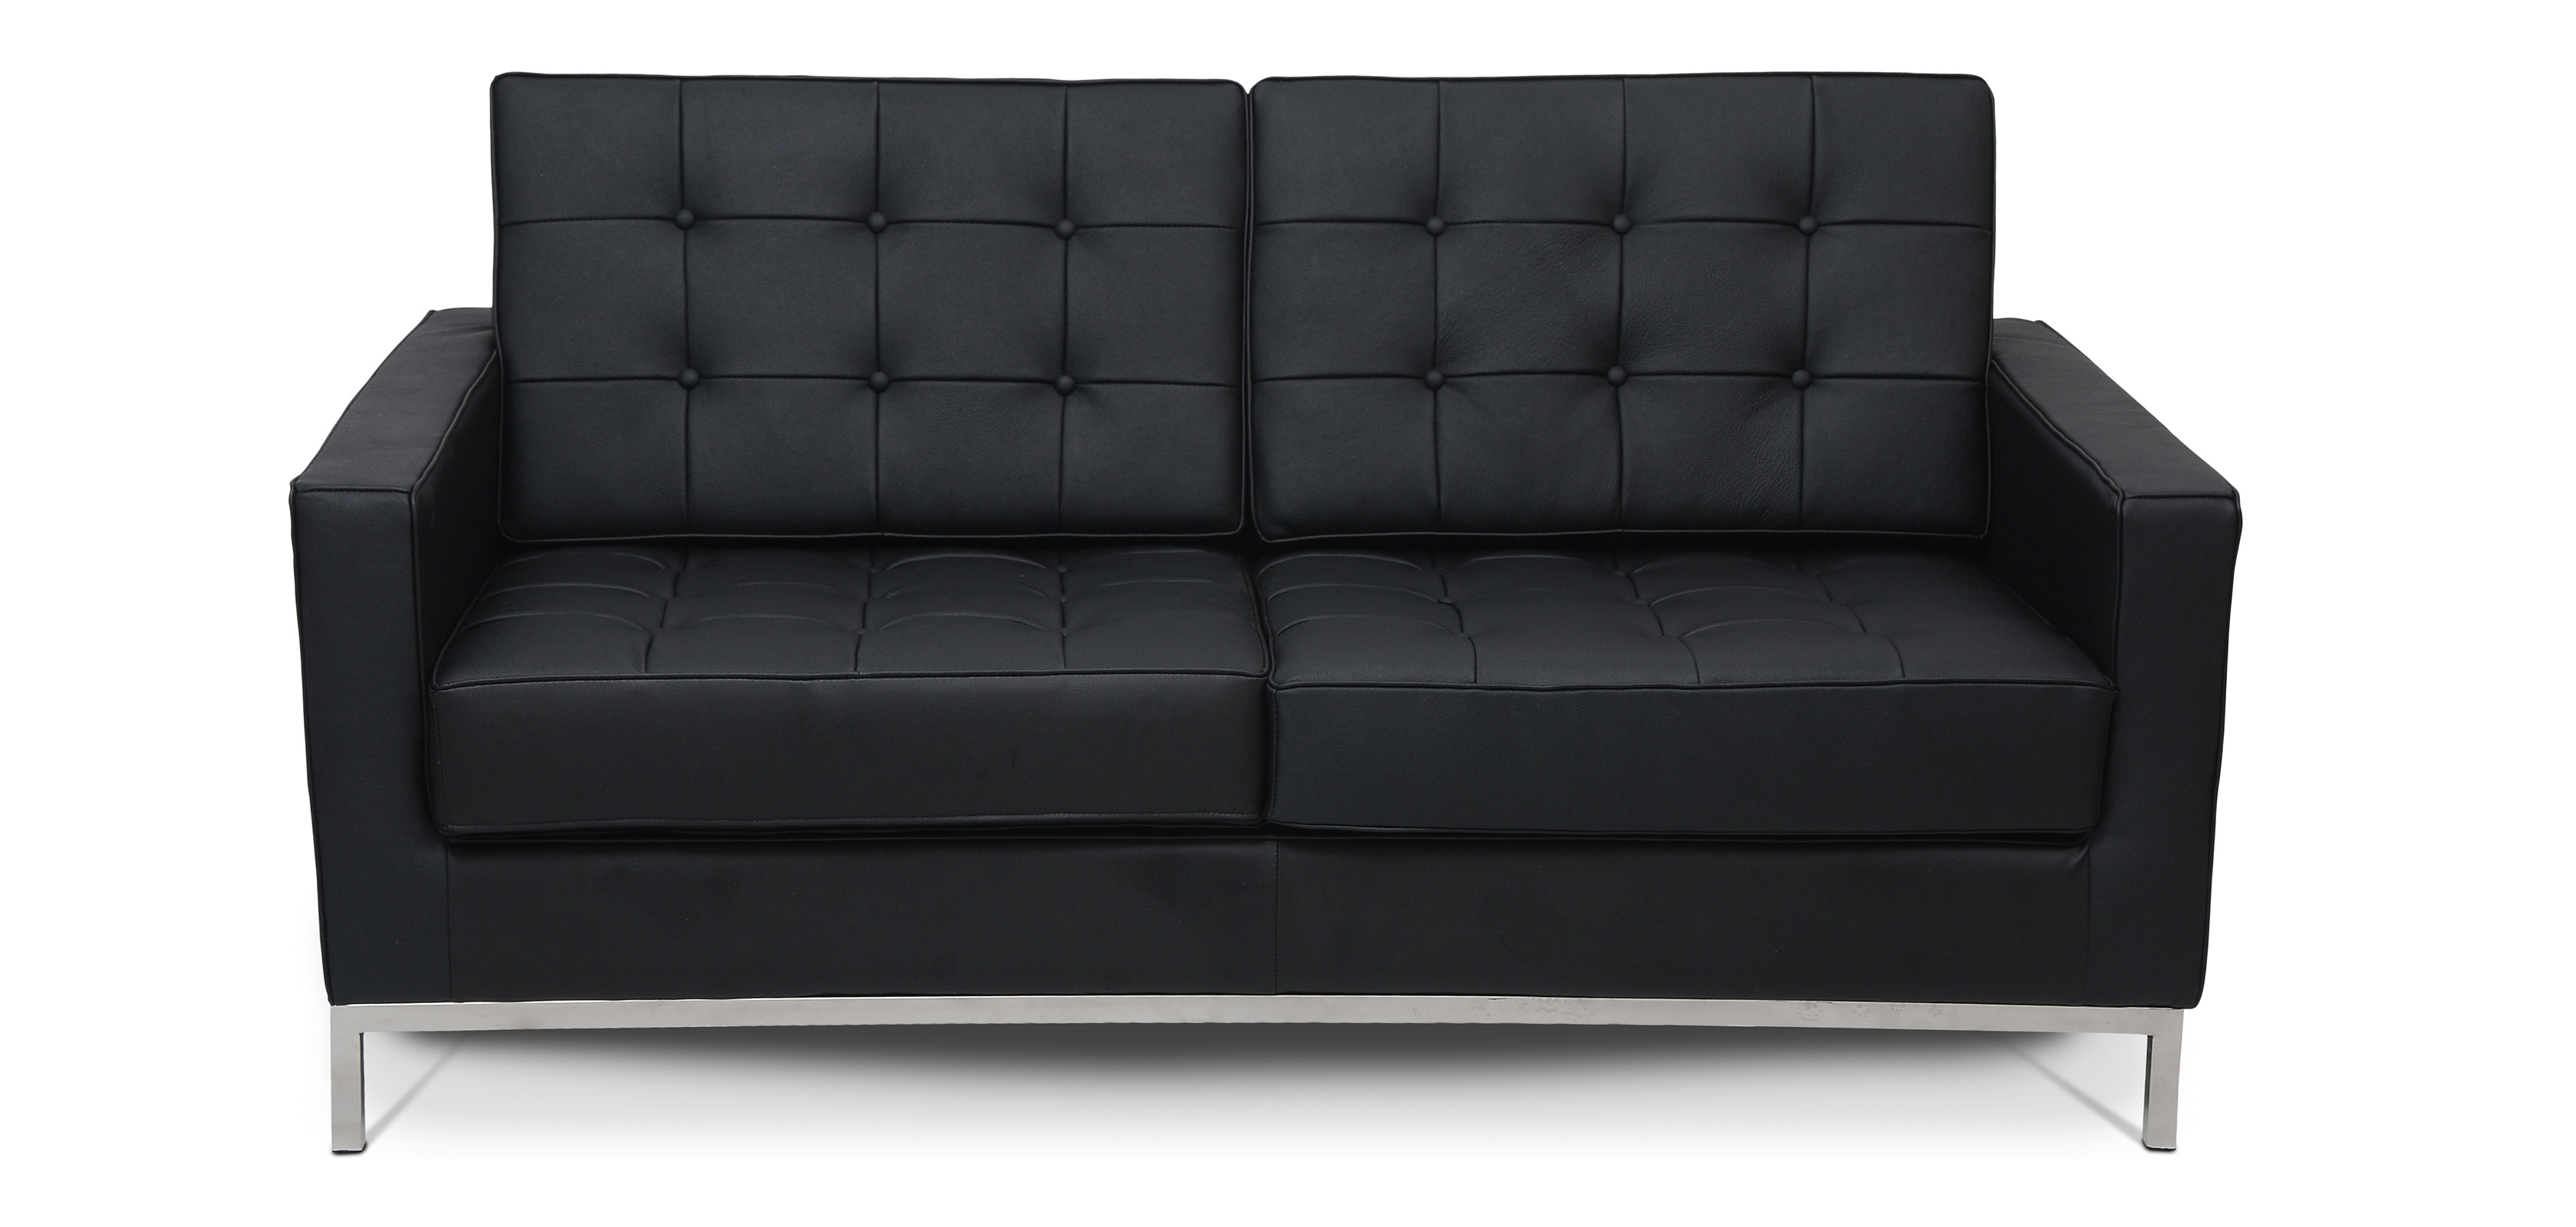 Sofas : Florence Knoll Sofa Grey Sofa' Click Clack Sofa' Florence Intended For Best And Newest Florence Knoll Wood Legs Sofas (View 18 of 20)